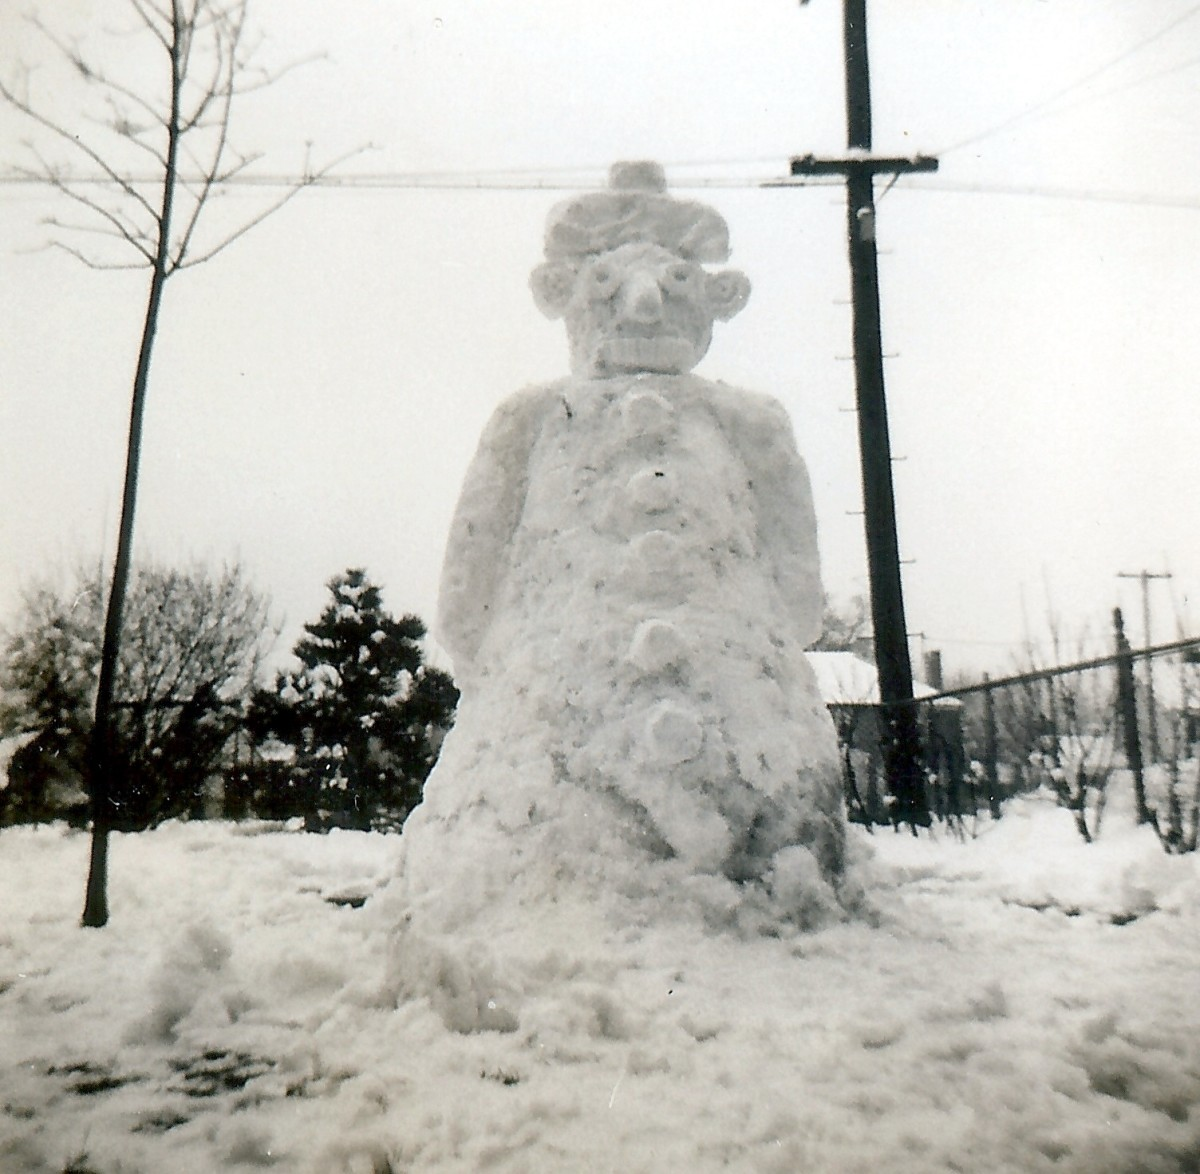 Family photo of a snowman from northern climes